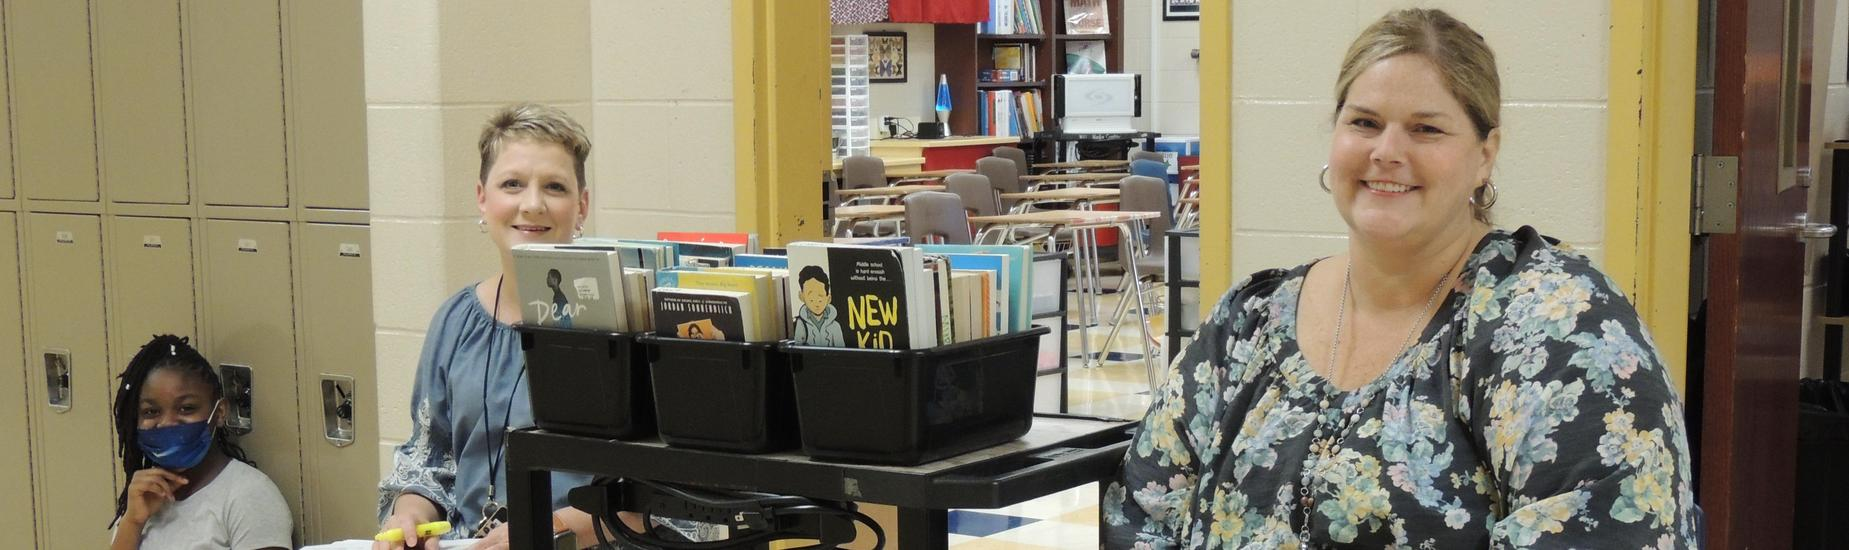 Mrs. Cook and Ms. Lewis in the hallway with books